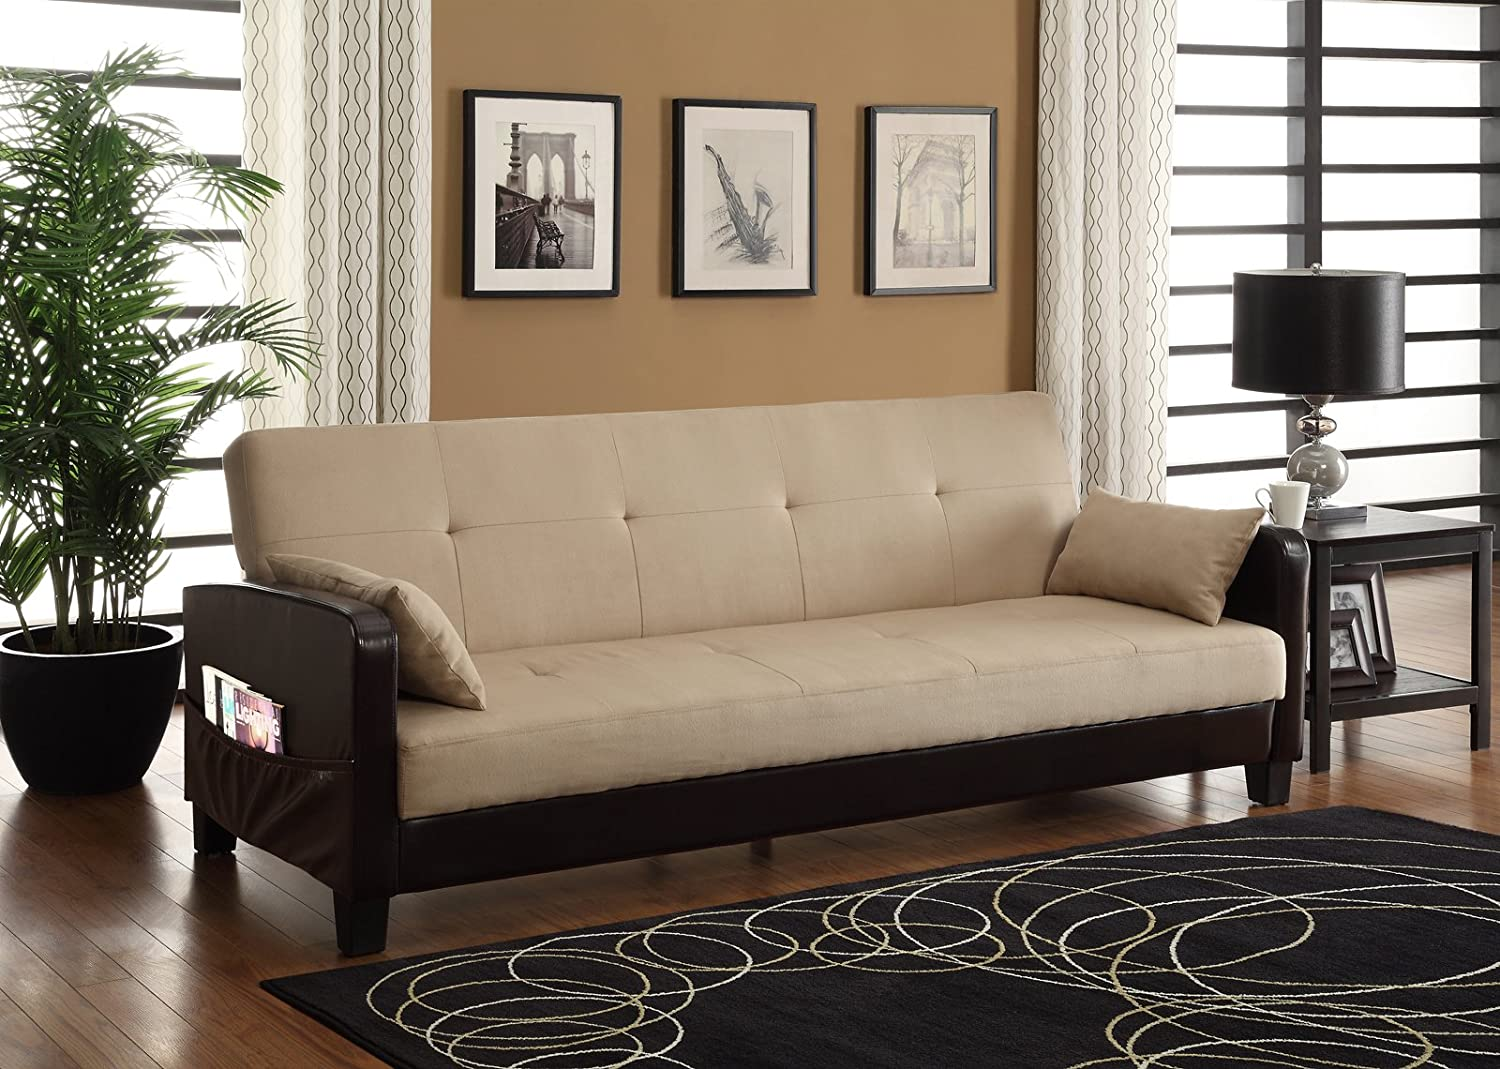 Amazon: DHP Vienna Sofa Sleeper With 2 Pillows - Chocolate Brown And  Tan: Kitchen & Dining